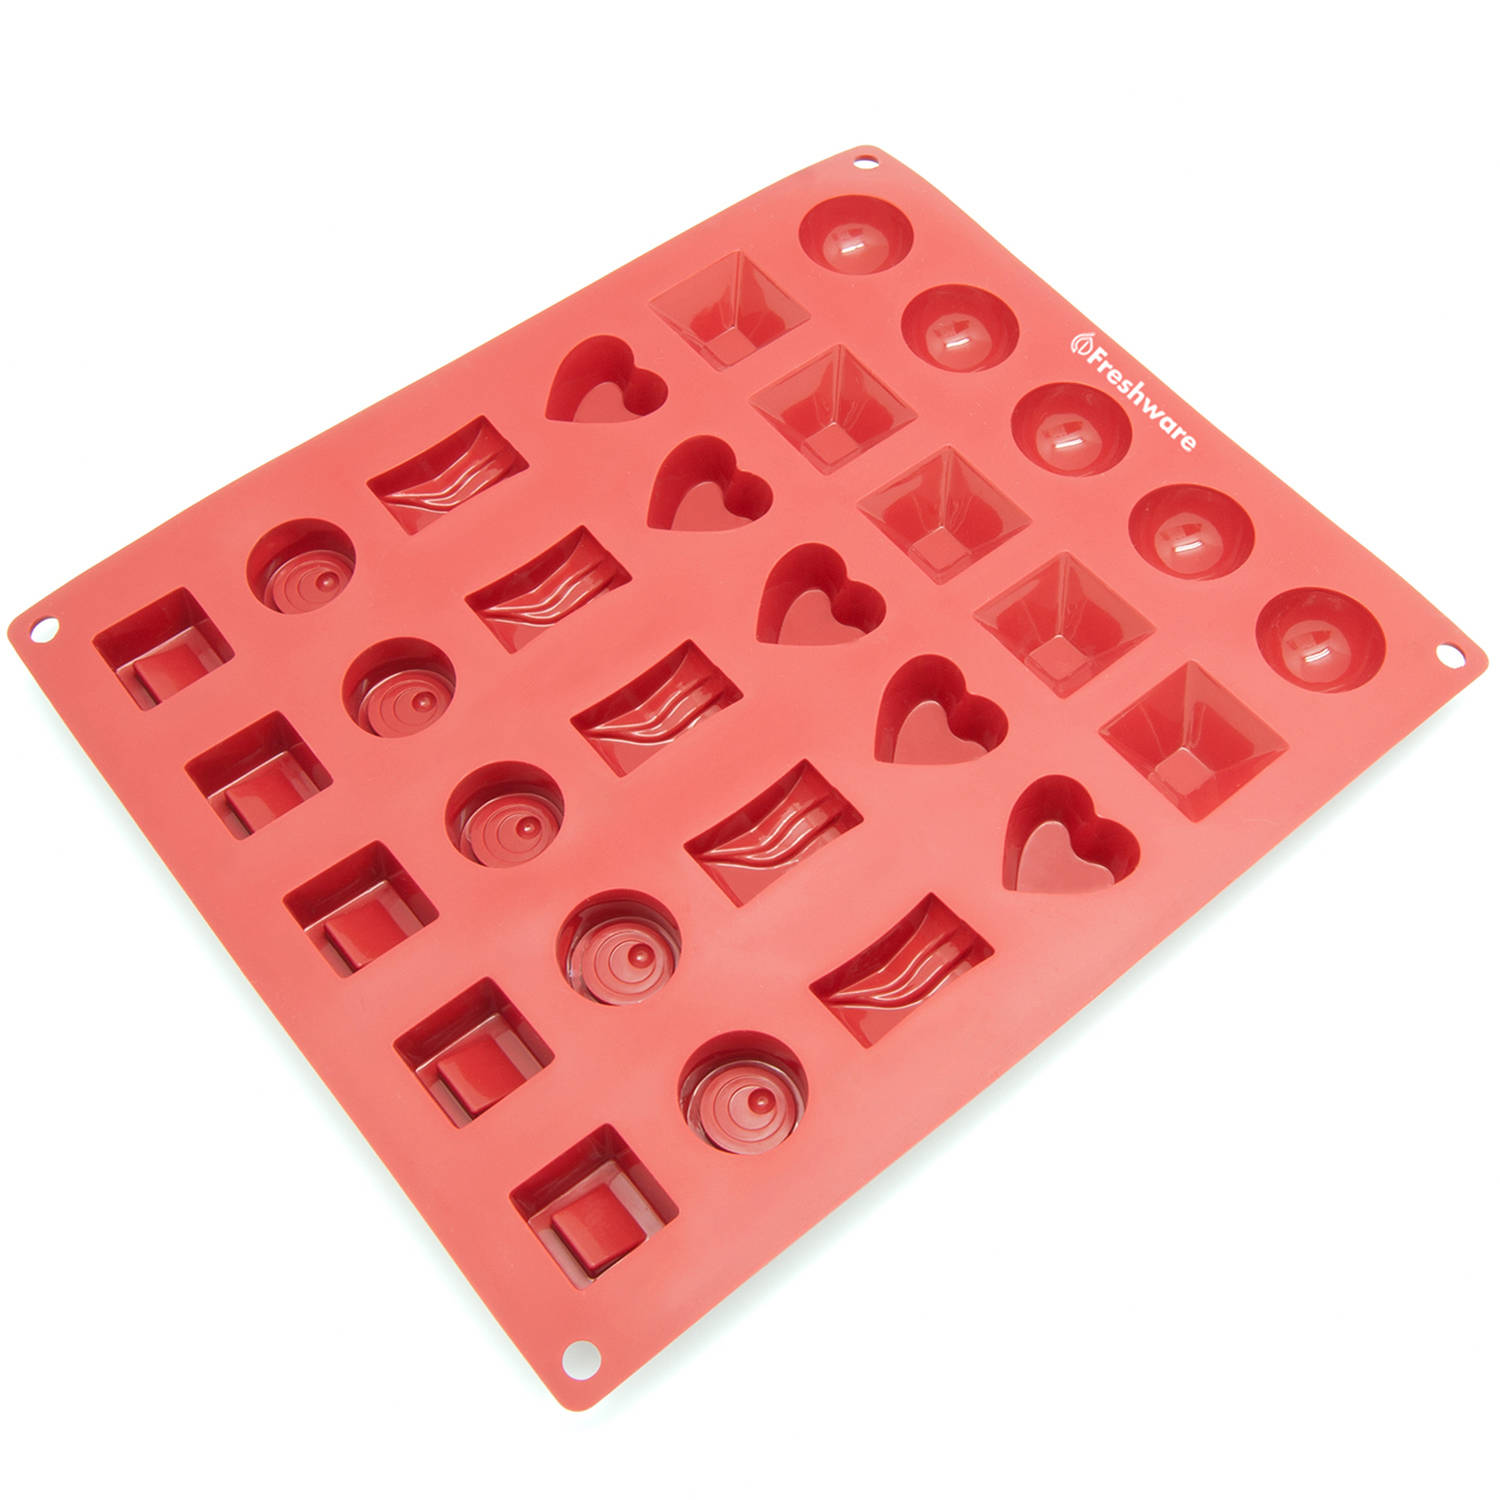 Freshware 30-Cavity Silicone Mold for Assorted Chocolate, Candy, Gummy and Jelly, CB-114RD